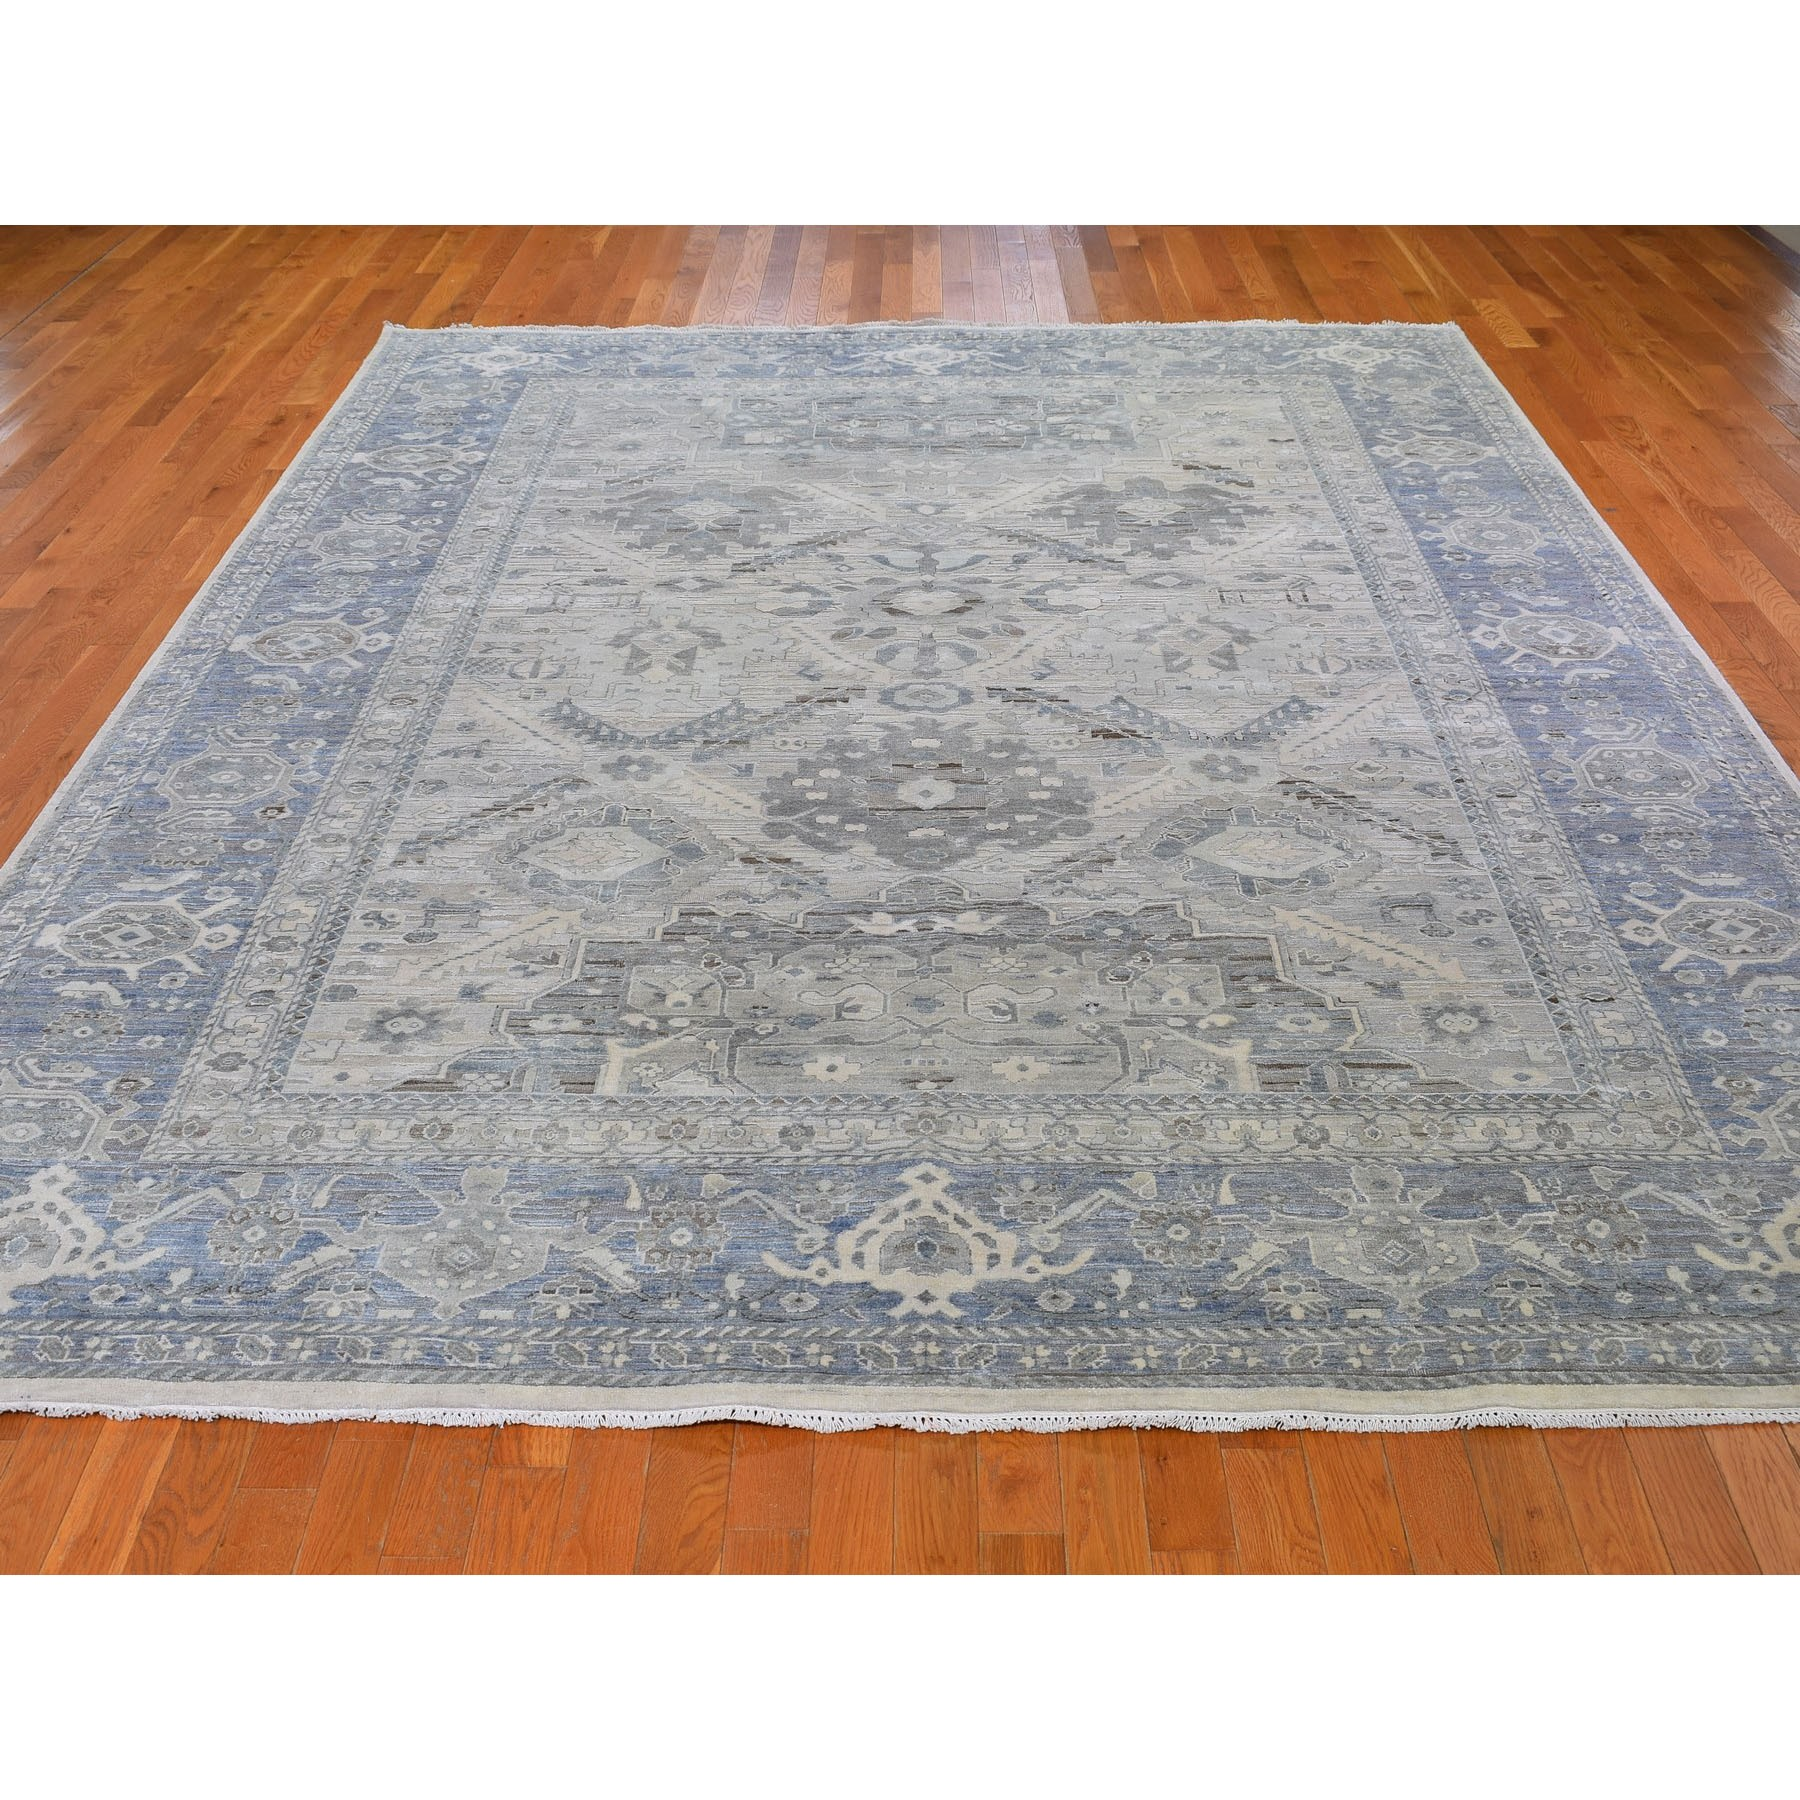 9-1 x12- Hand Knotted Pure Silk And Textured Wool Oushak With Geometric Motif Oriental Rug